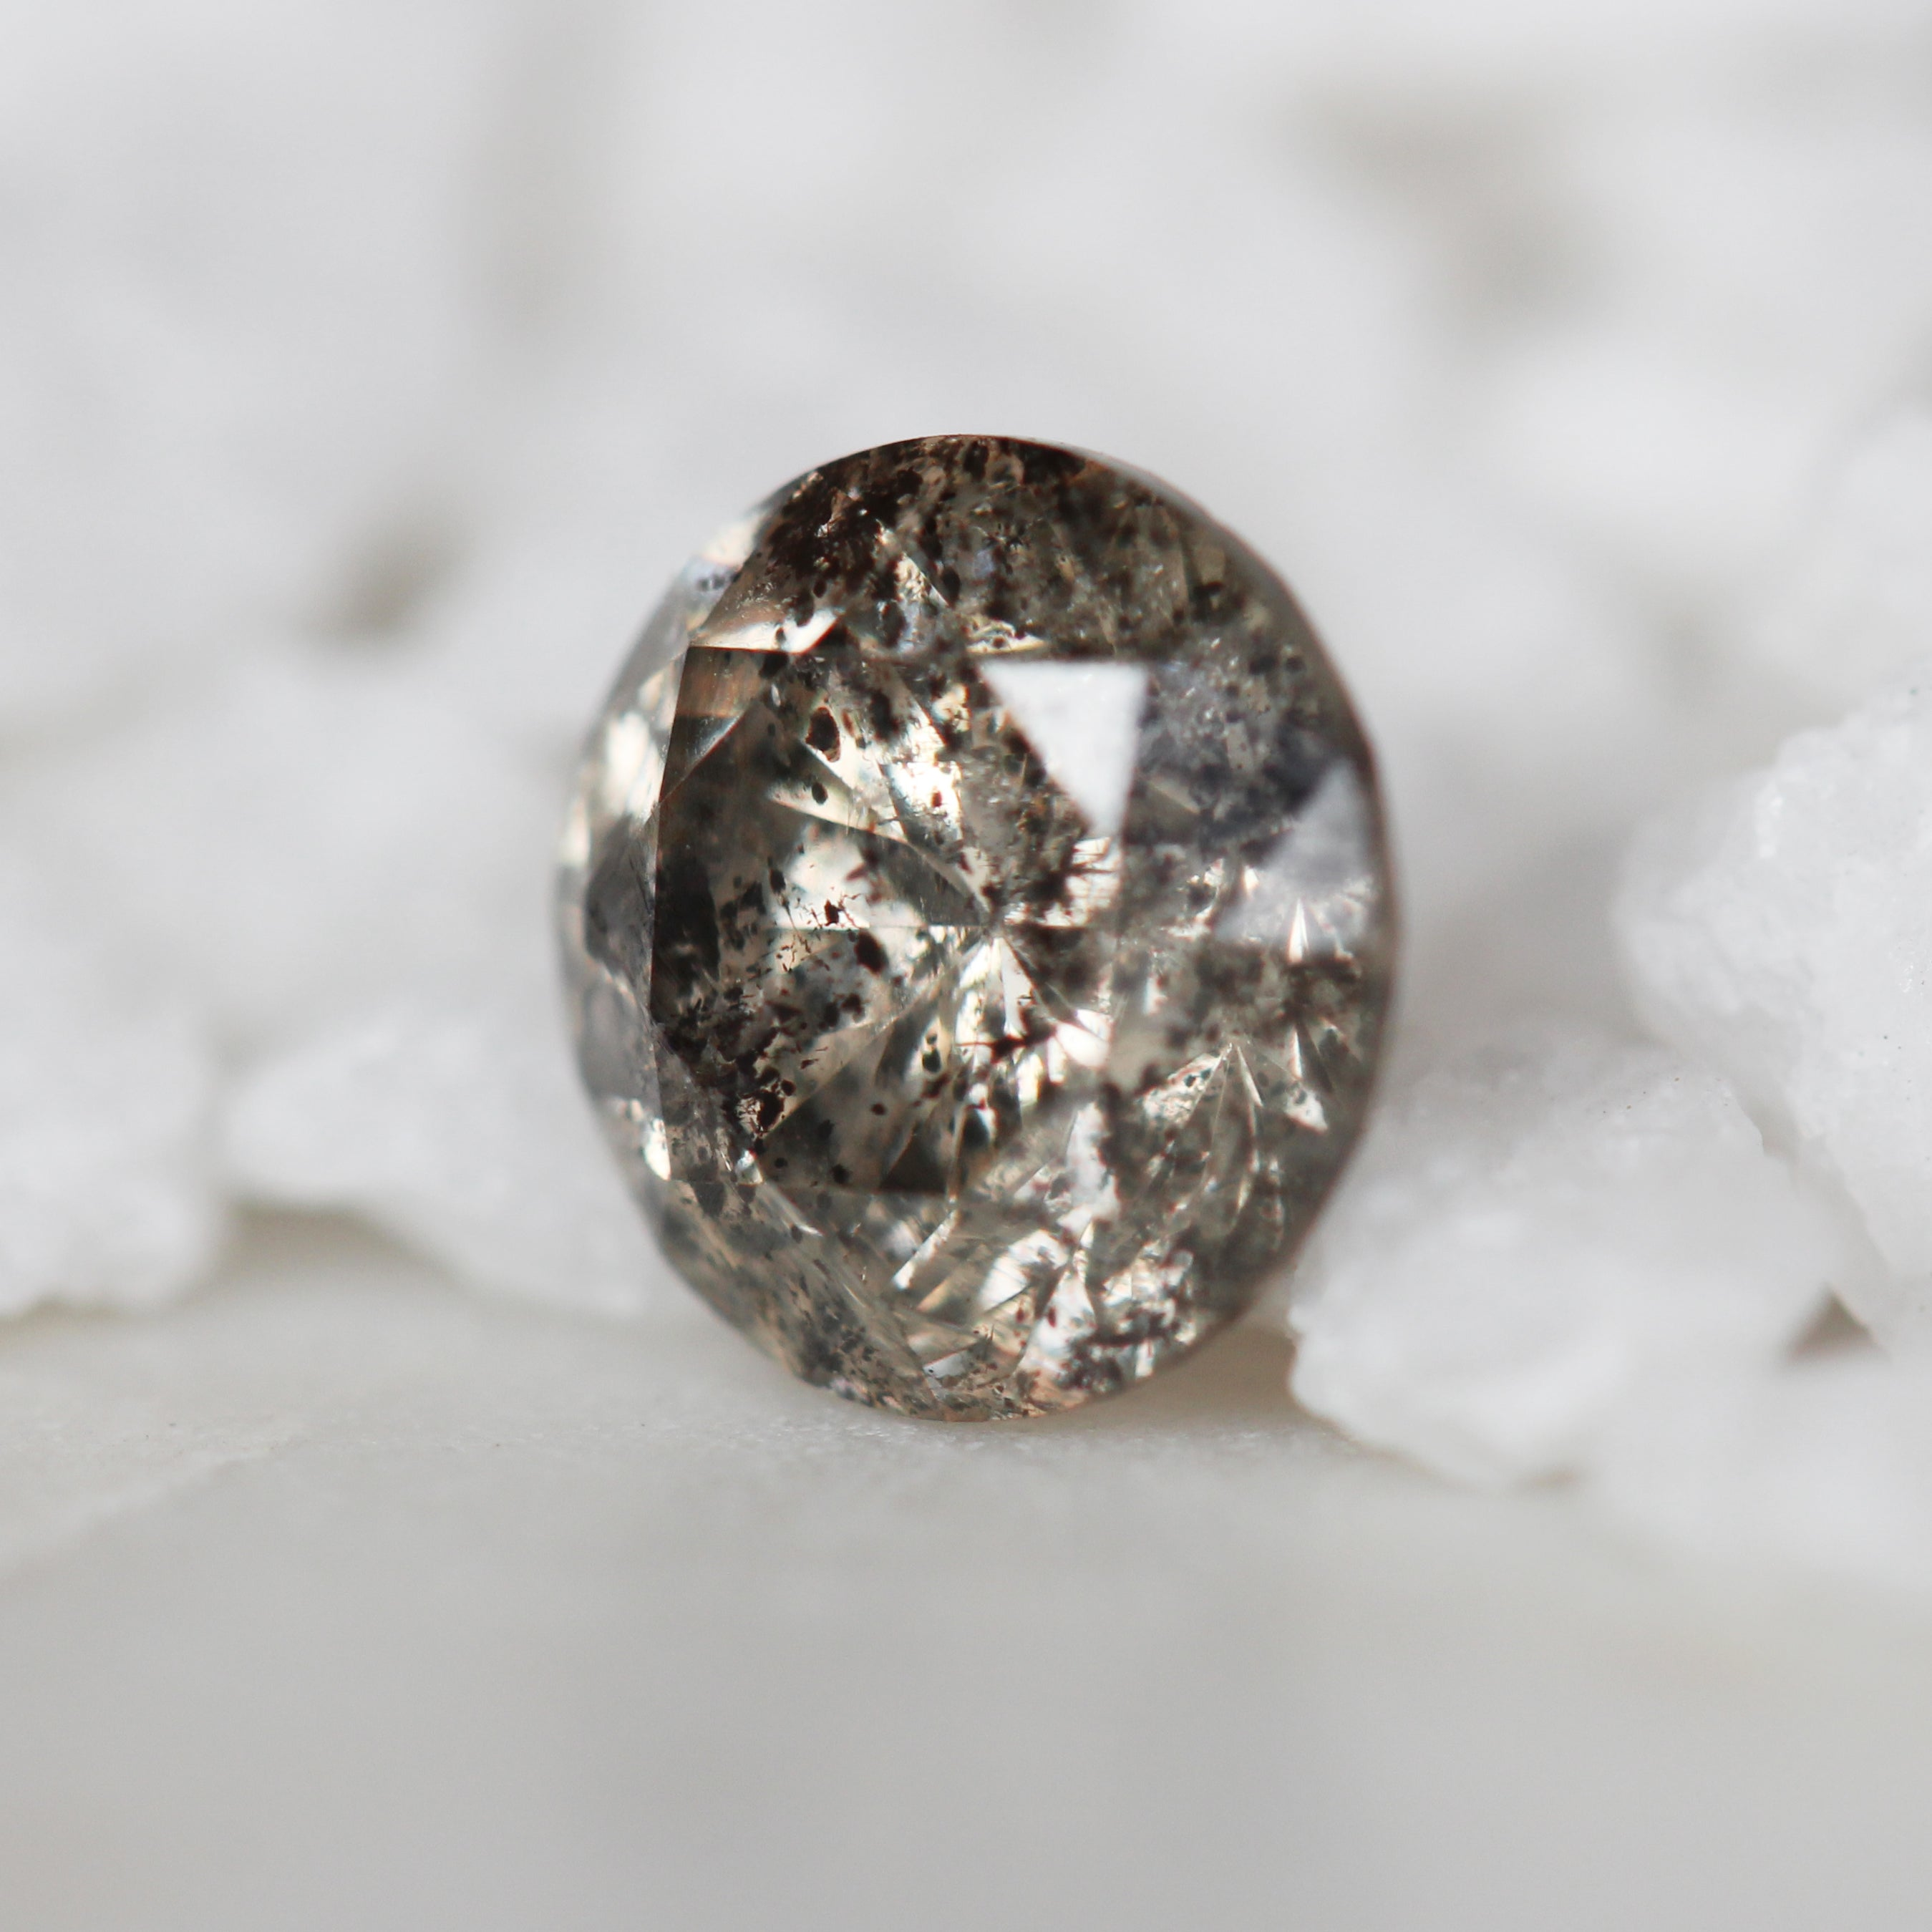 .95 Carat Round Celestial Diamond for Custom Work - Inventory Code CHBR95 - Midwinter Co. Alternative Bridal Rings and Modern Fine Jewelry